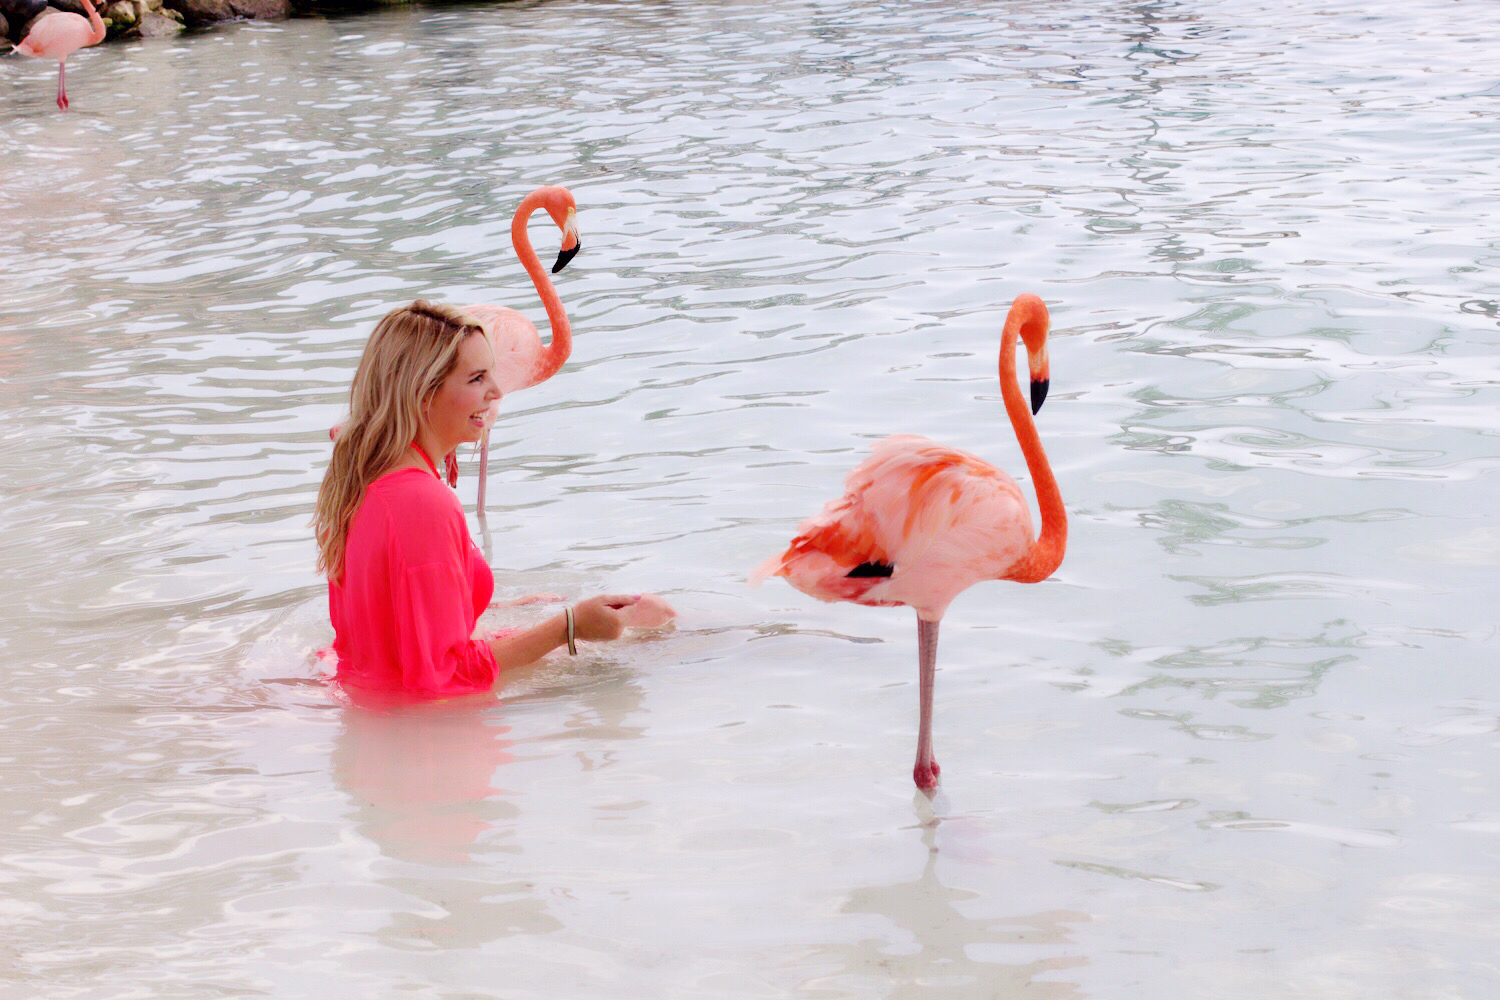 pink-the-town-flamingo-island-1